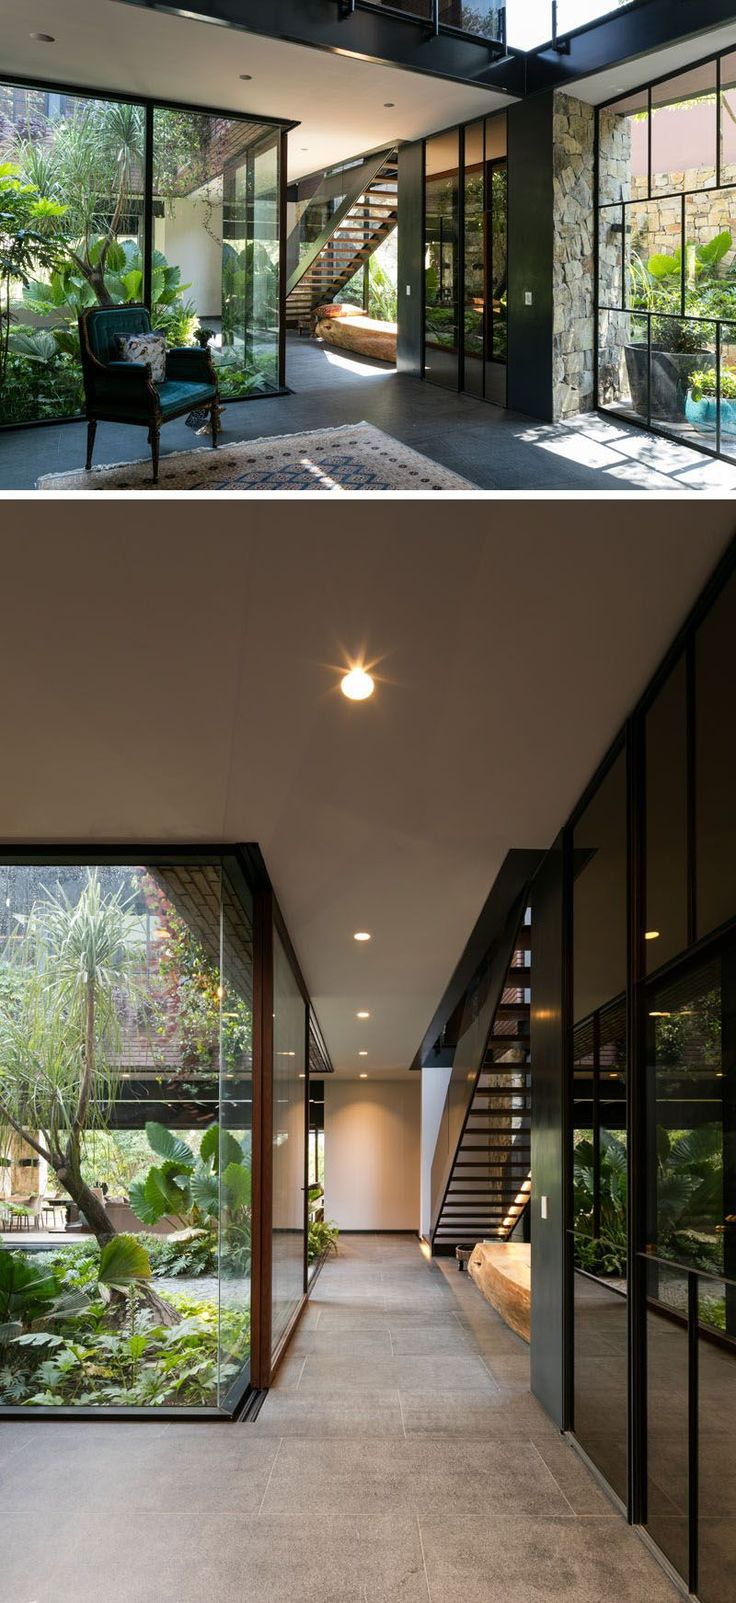 This modern house has a glass wall that shows off the internal courtyard from hallway.